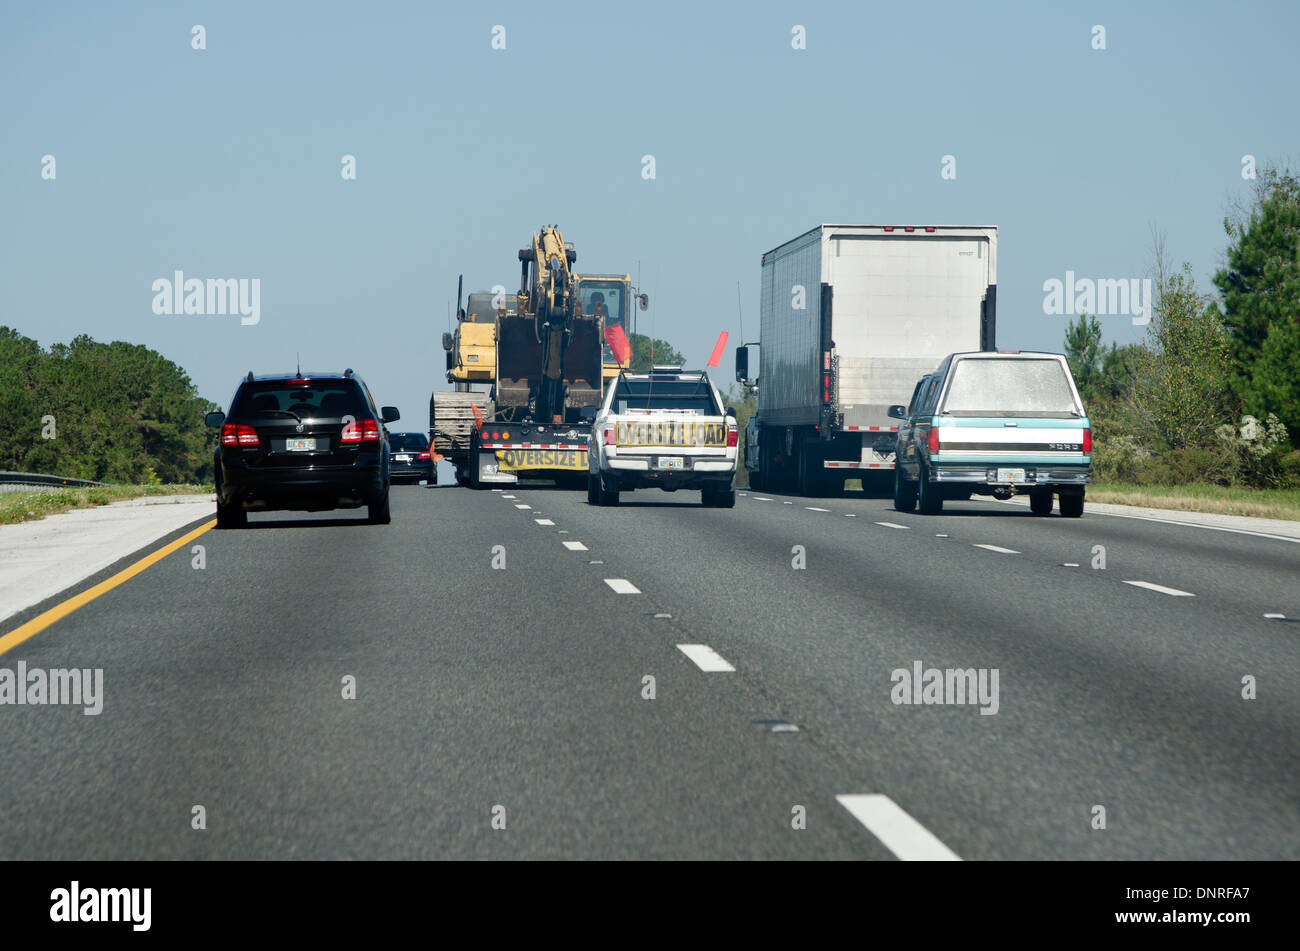 Escort vehicle truck with oversize load in center lane of highway America USA - Stock Image